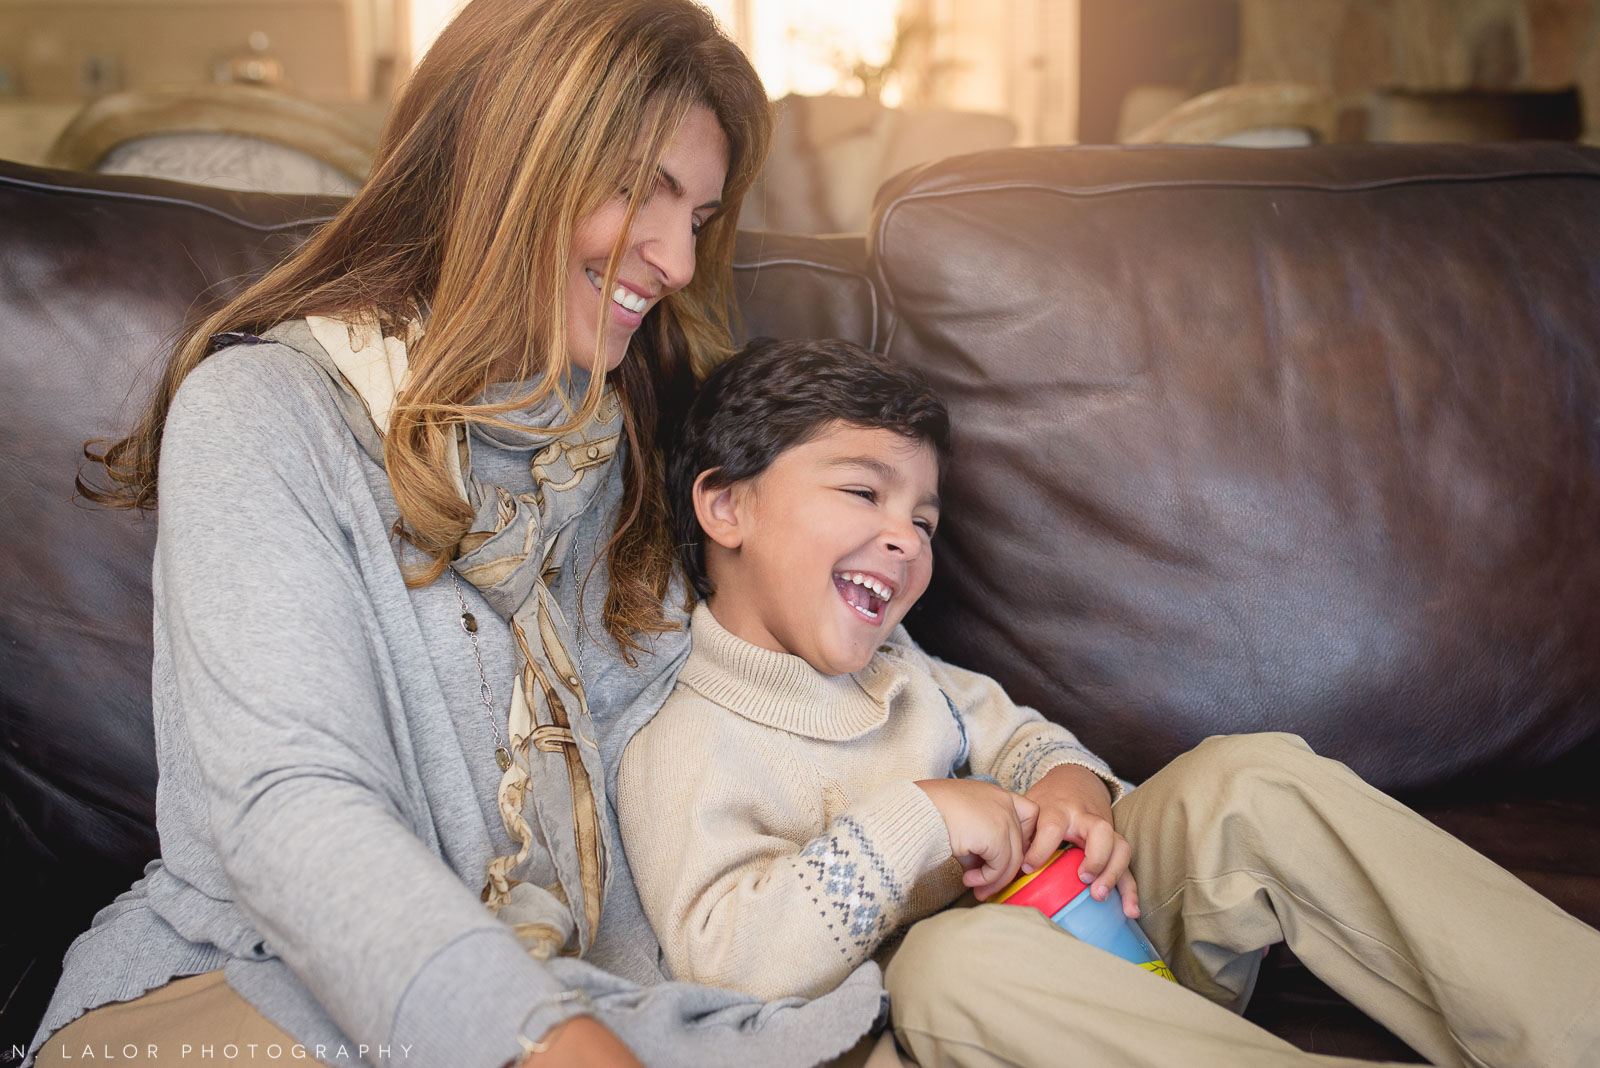 Mom and her son laughing on the couch. Lifestyle portrait by N. Lalor Photography.